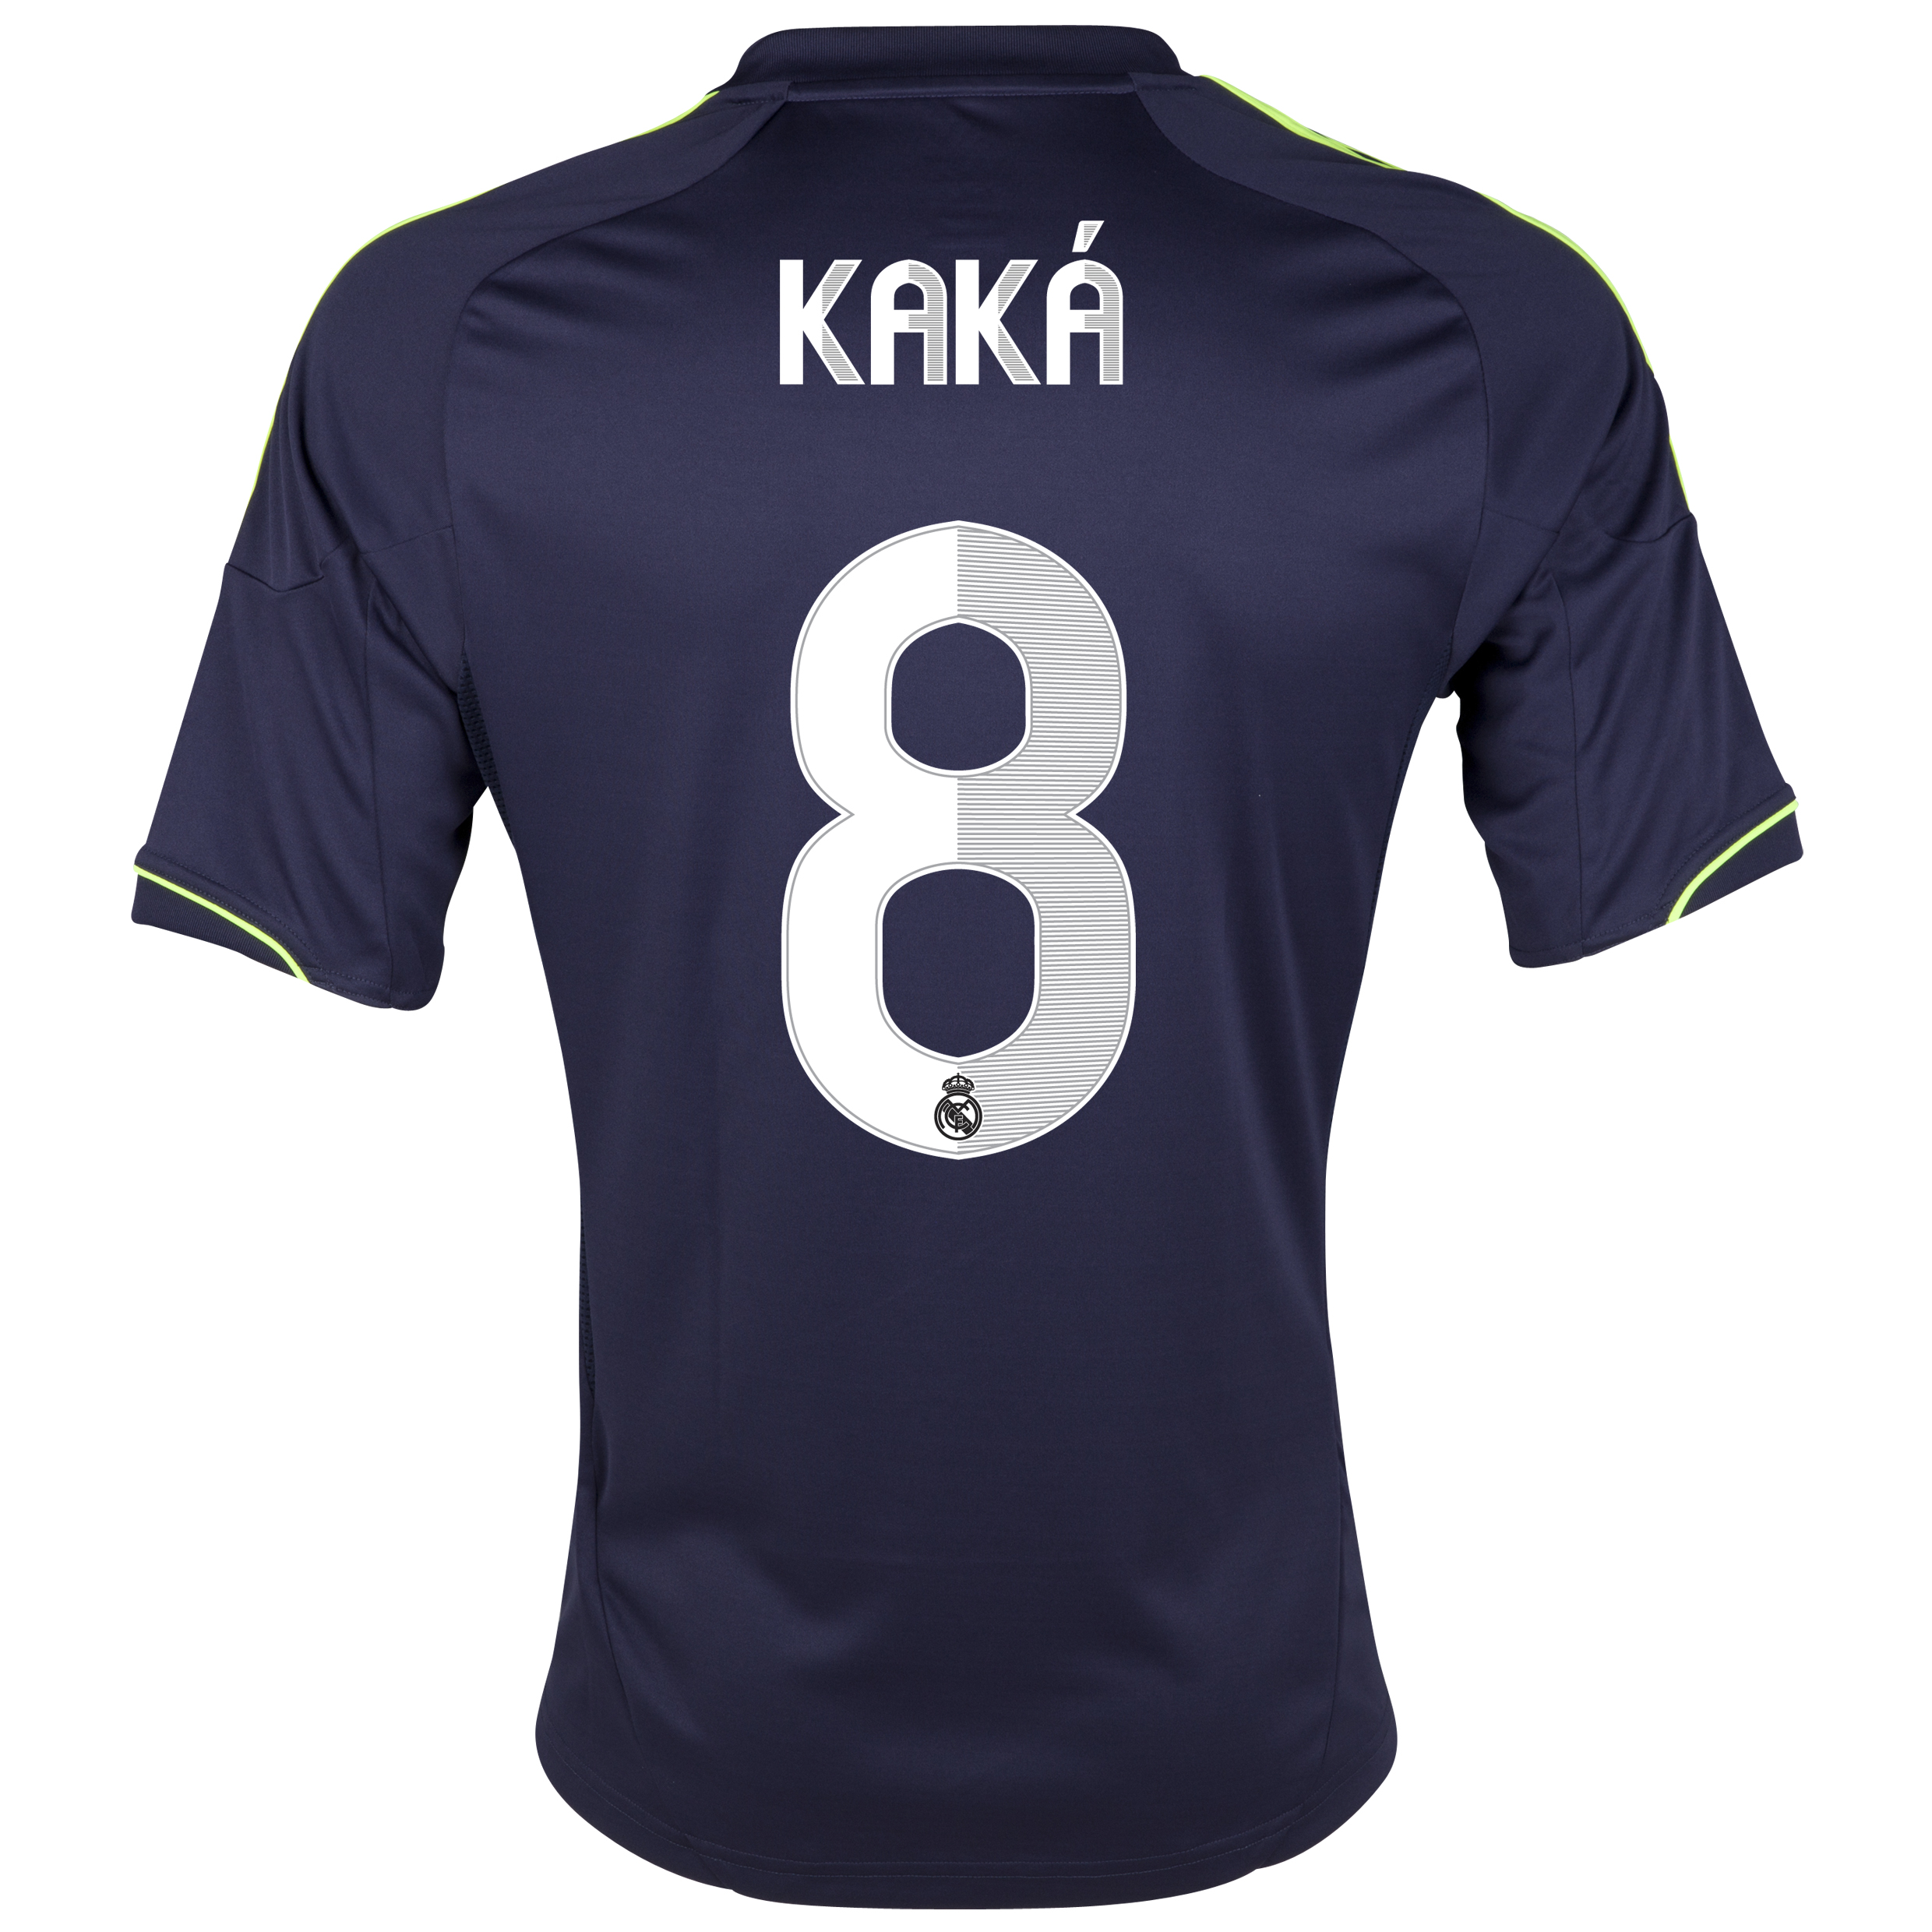 Camiseta visitante Real Madrid 2012/13 con impresin 8 Kak - Nio